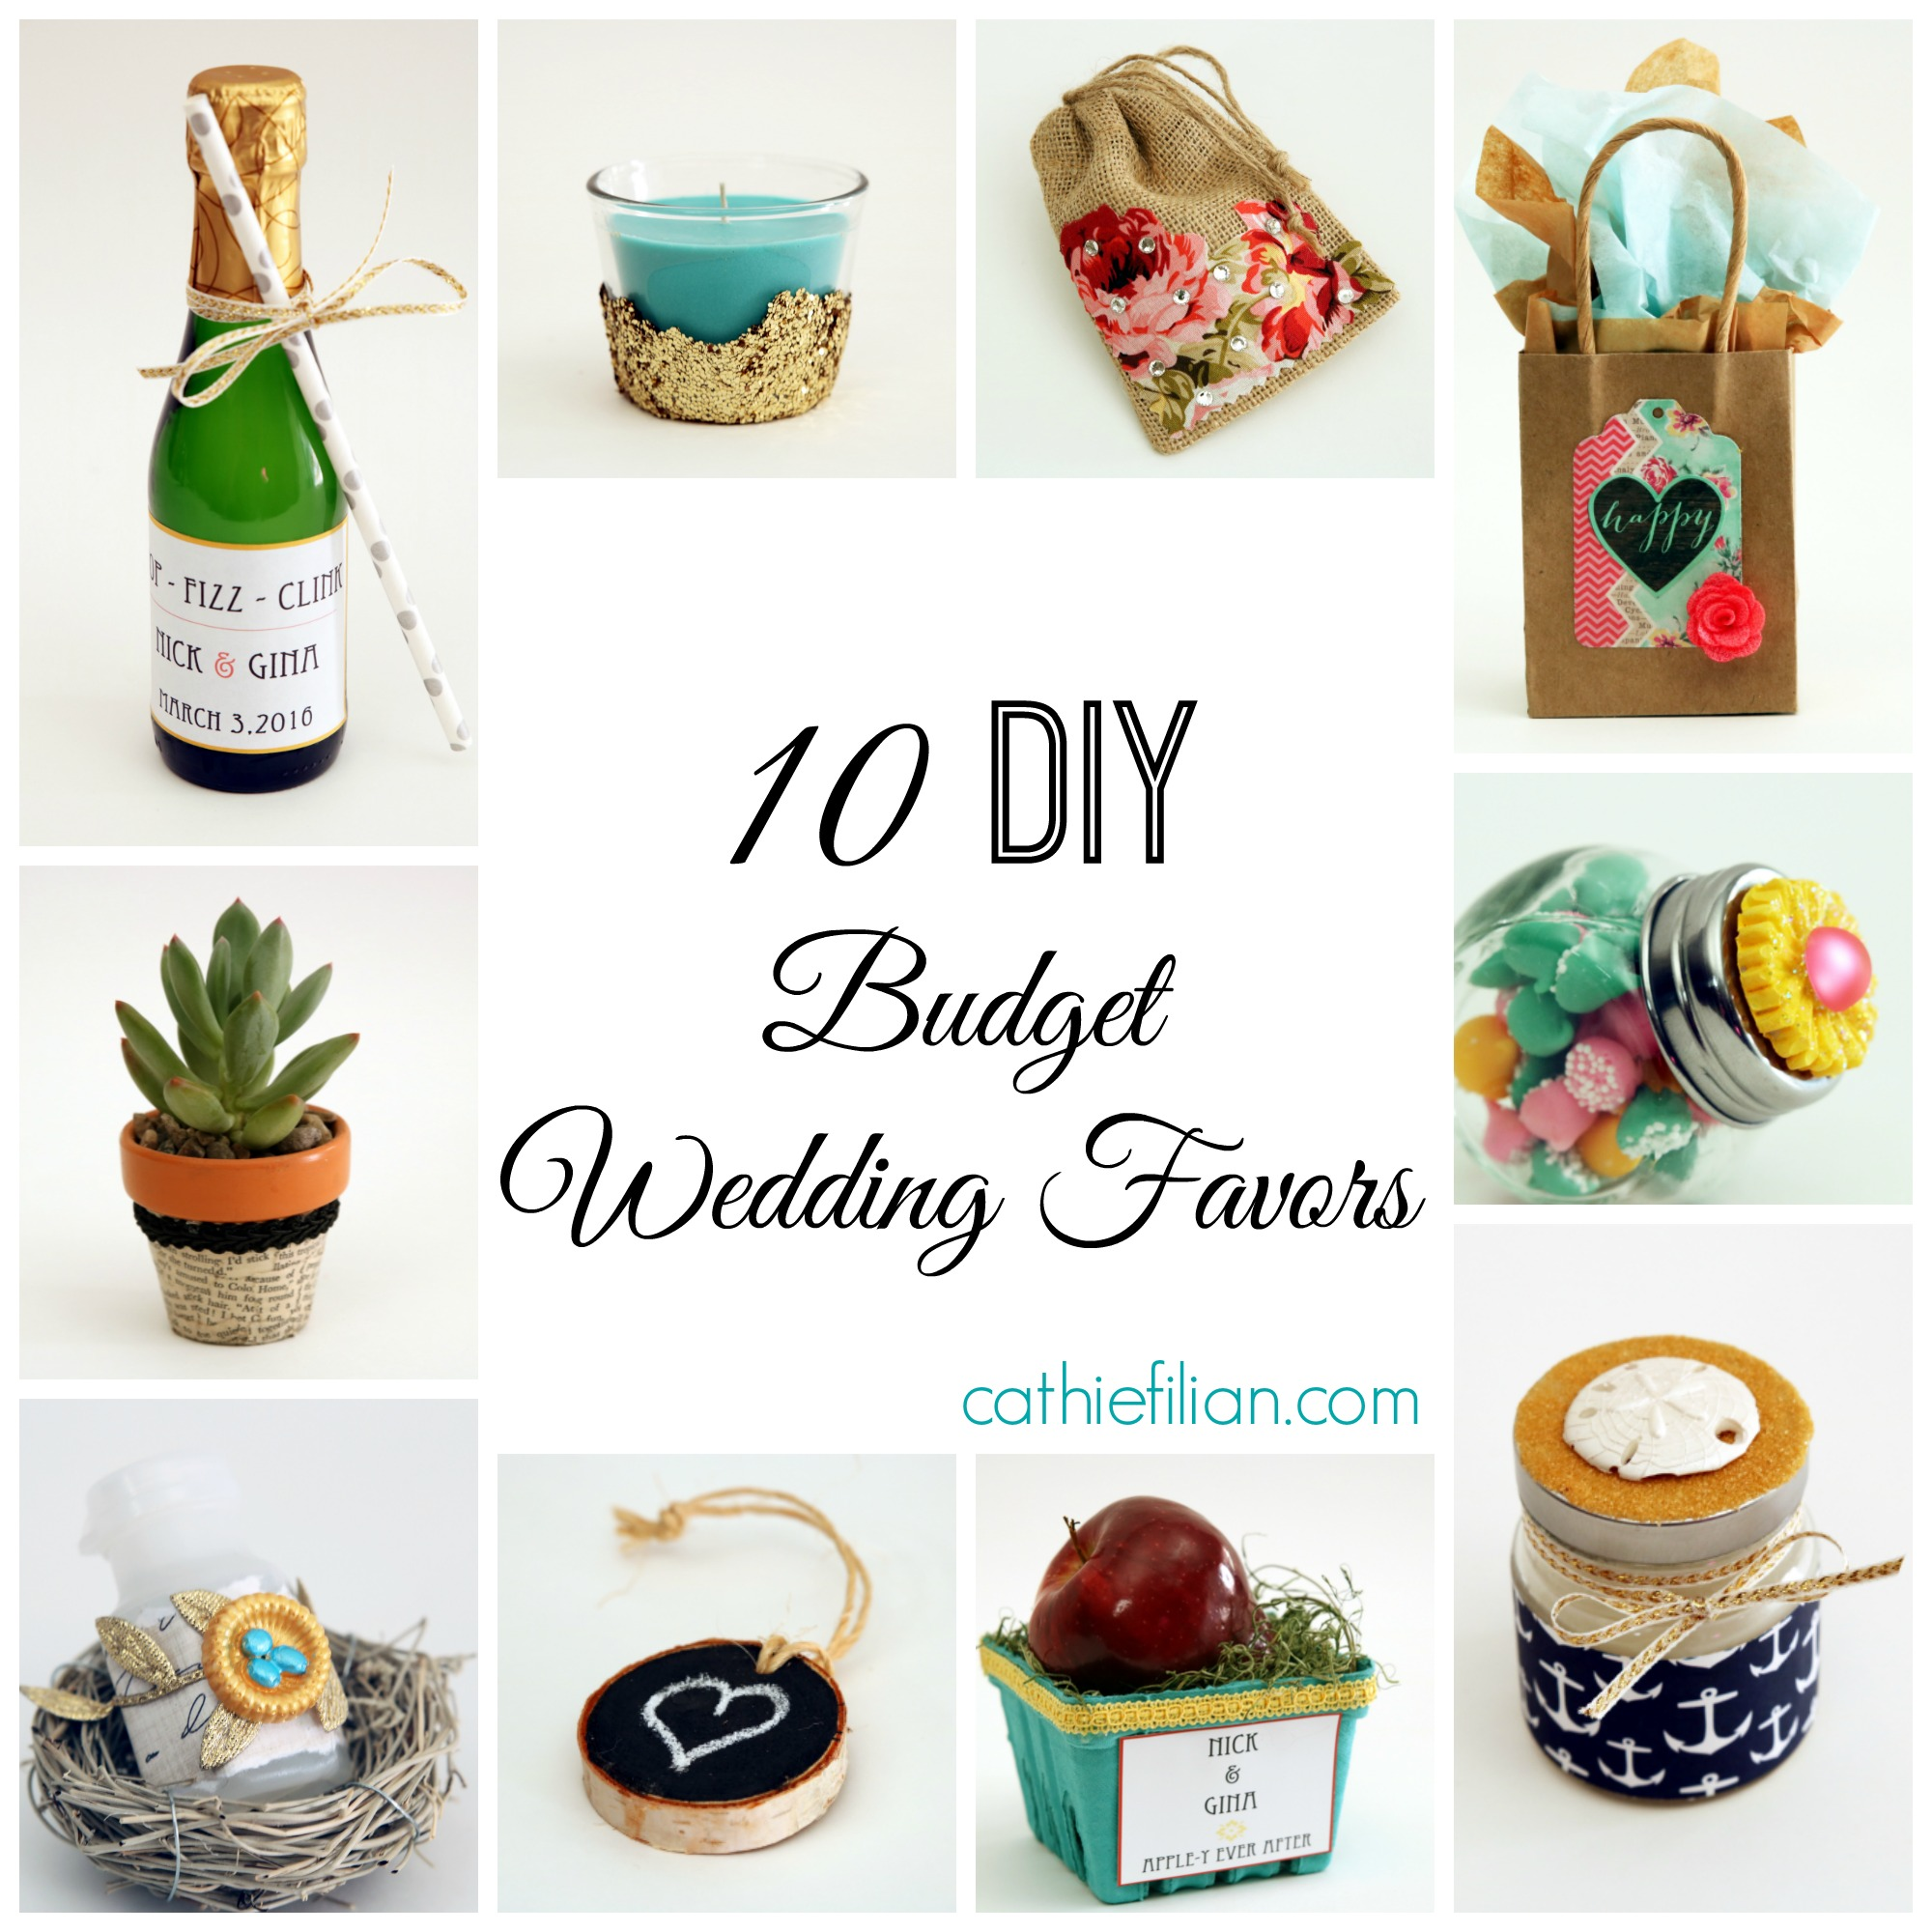 10 DIY Budget Wedding Favor Ideas